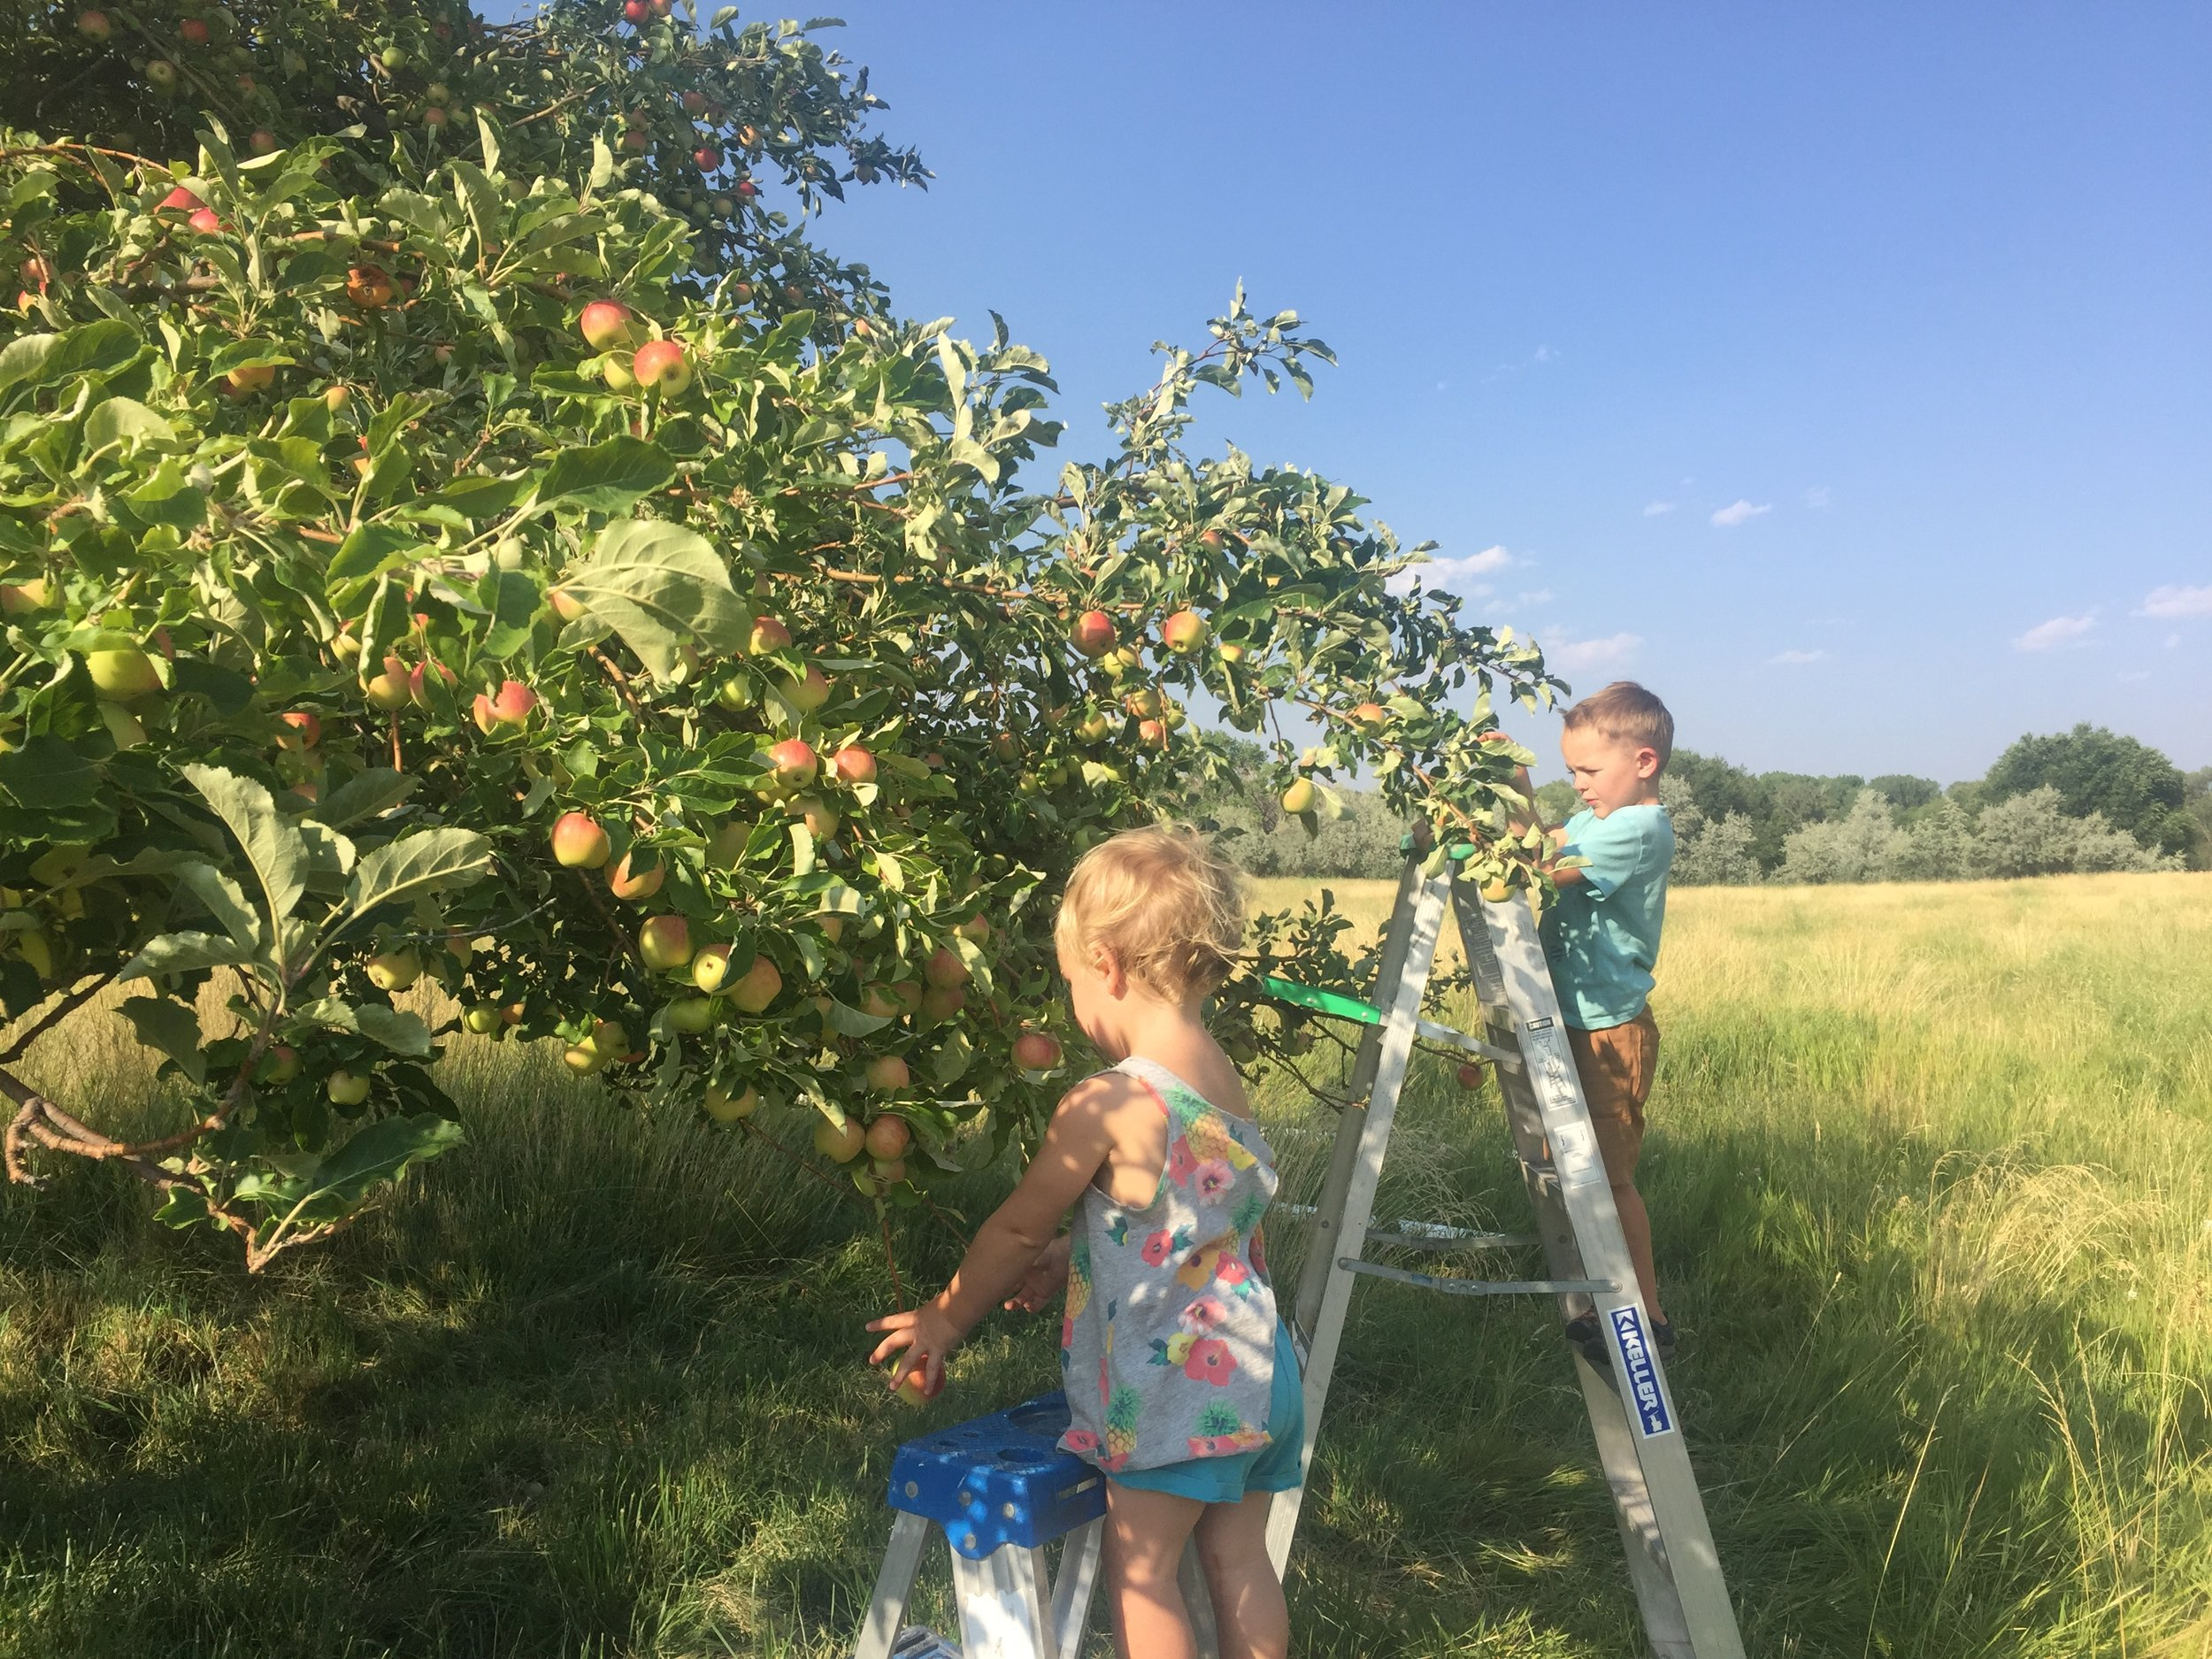 Mato and Chayton Johansson pick apples from what is believed to be a Gravenstein tree near Nucla. [Photo courtesy of the Apple Core Project]